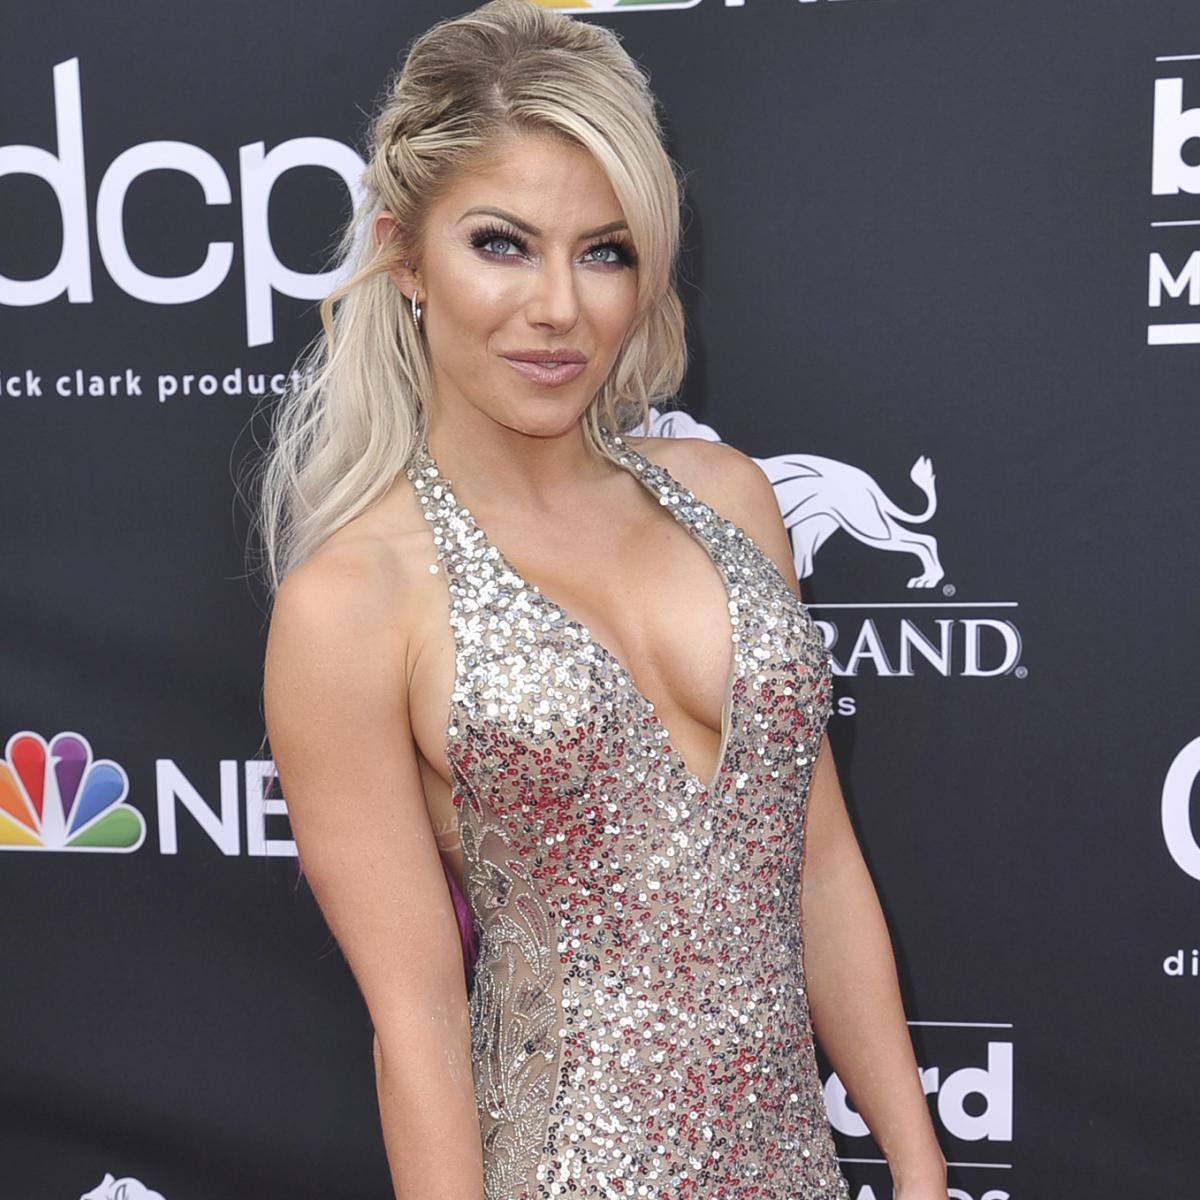 Alexa Bliss Removed From Wwe Money In The Bank Ladder Match With Injury Bleacher Report Latest News Videos And Highlights Find the hottest alexabliss stories you'll love. alexa bliss removed from wwe money in